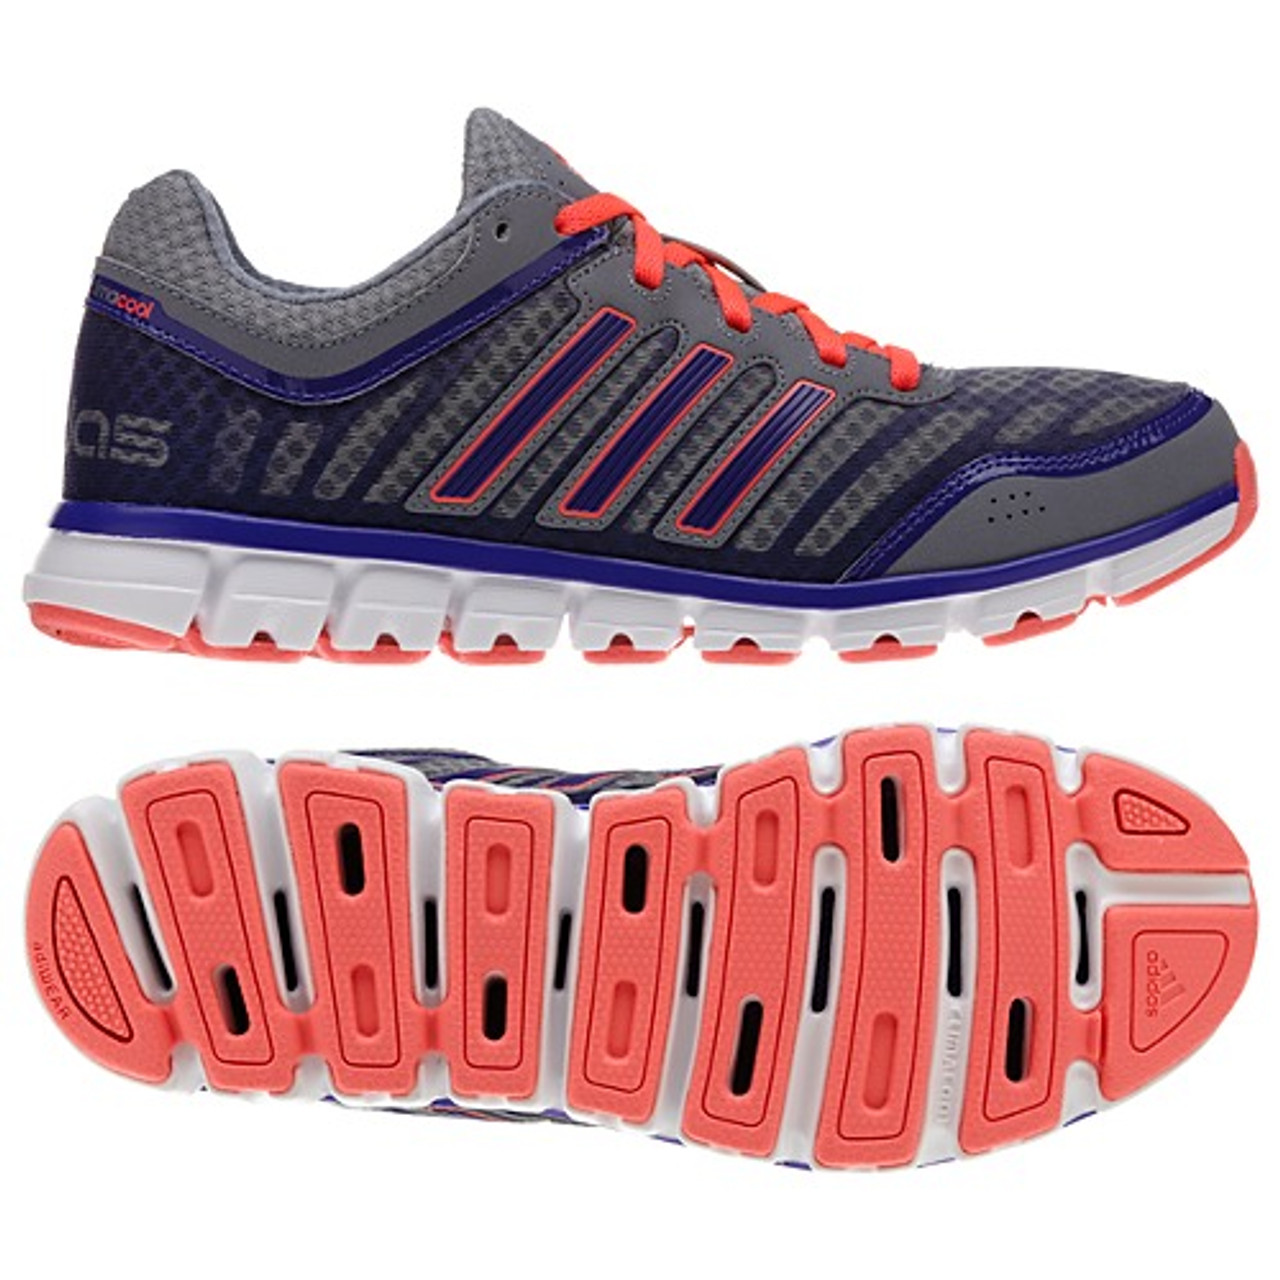 Adidas ClimaCool Aerate 2 Grey/Red Zest Ladies Running Shoes